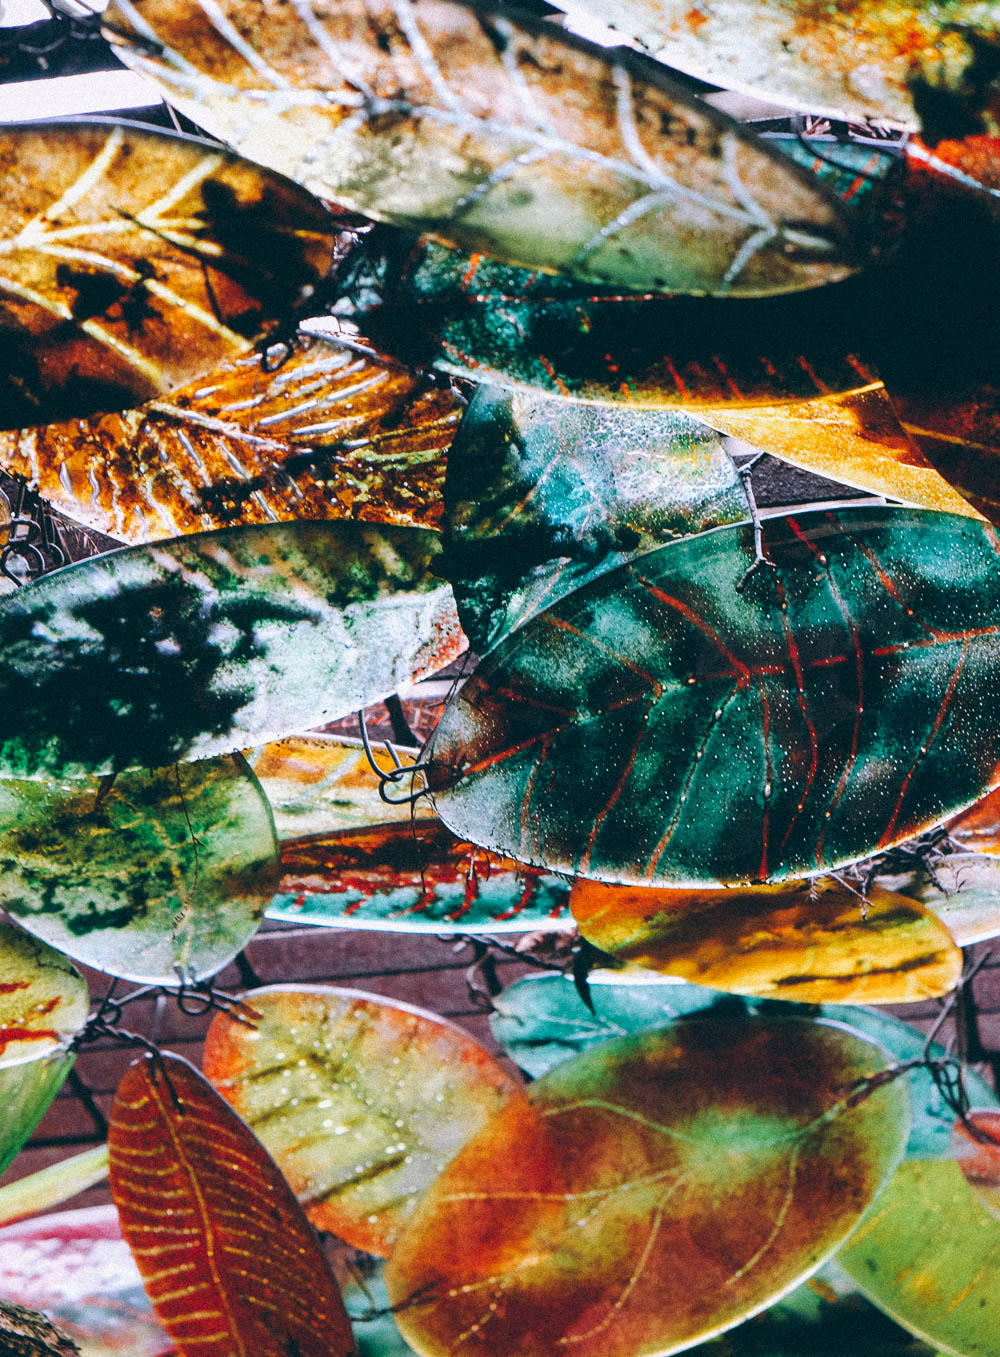 stained glass leaves at furzey gardens, hampshire